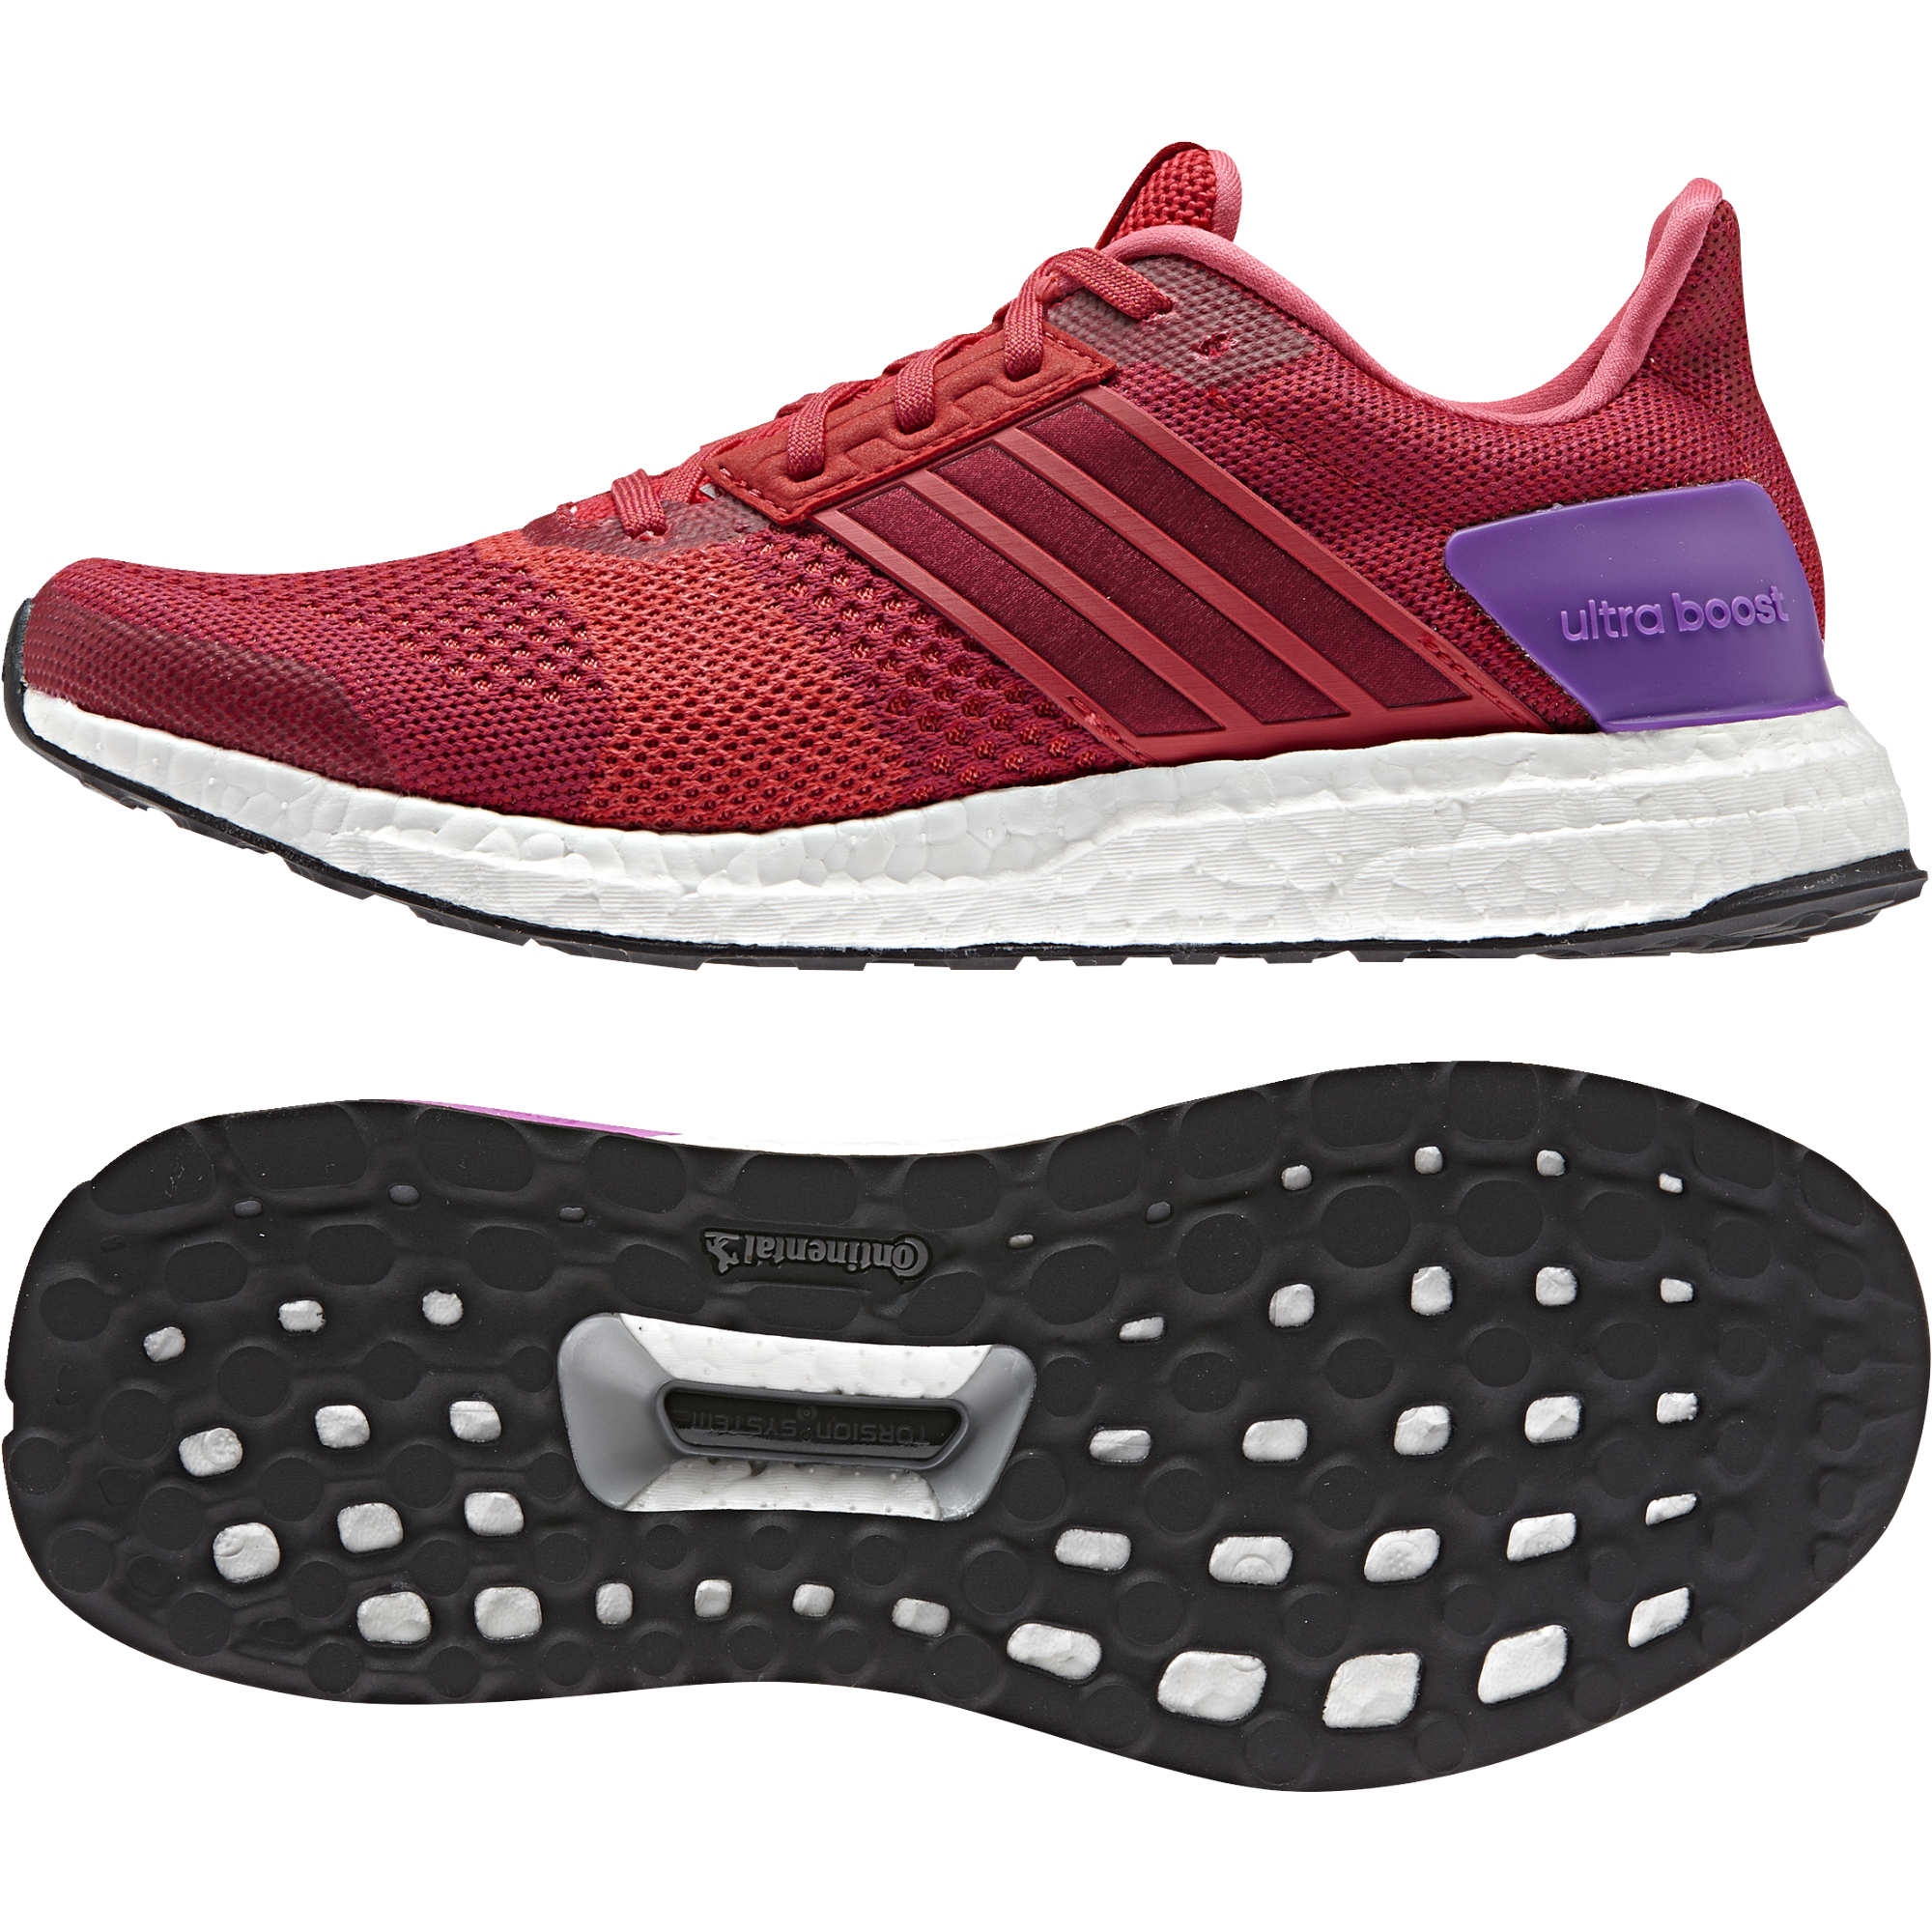 Adidas Ultra Boost ST W in Ray Red